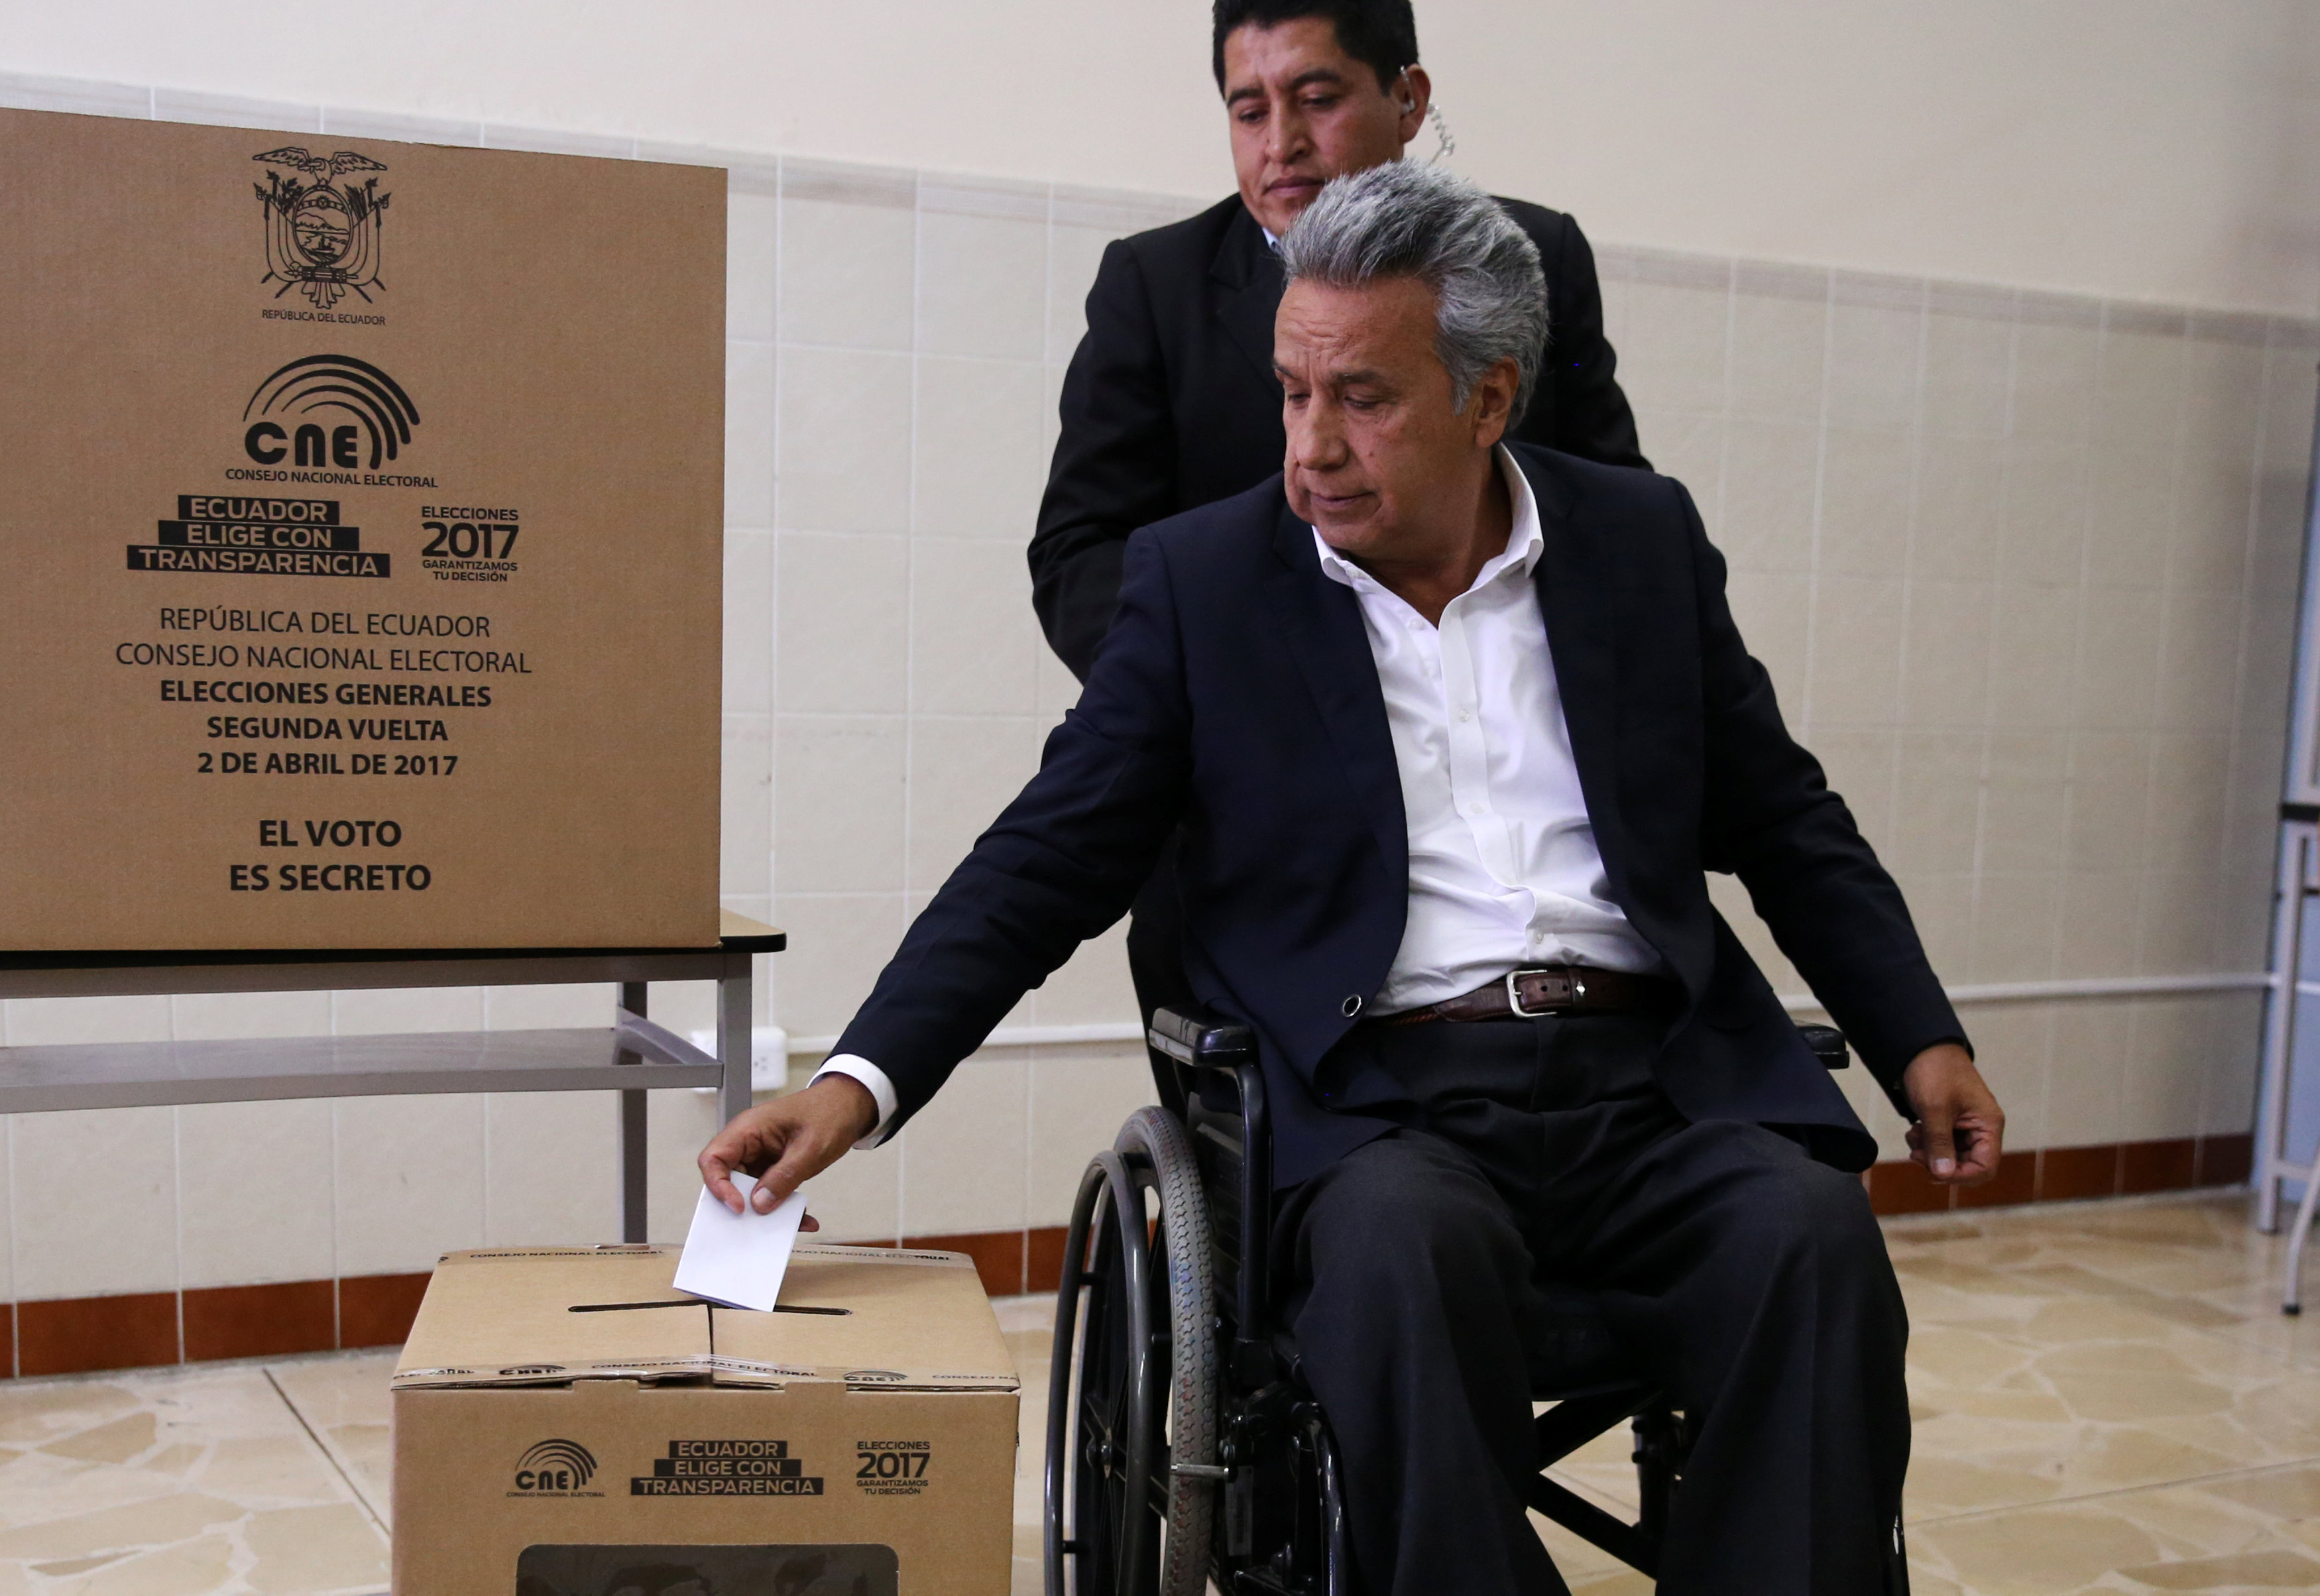 Socialist candidate Lenin Moreno casts his vote during the presidential election in Quito, Ecuador on April 2, 2017. (REUTERS/Mariana Bazo)